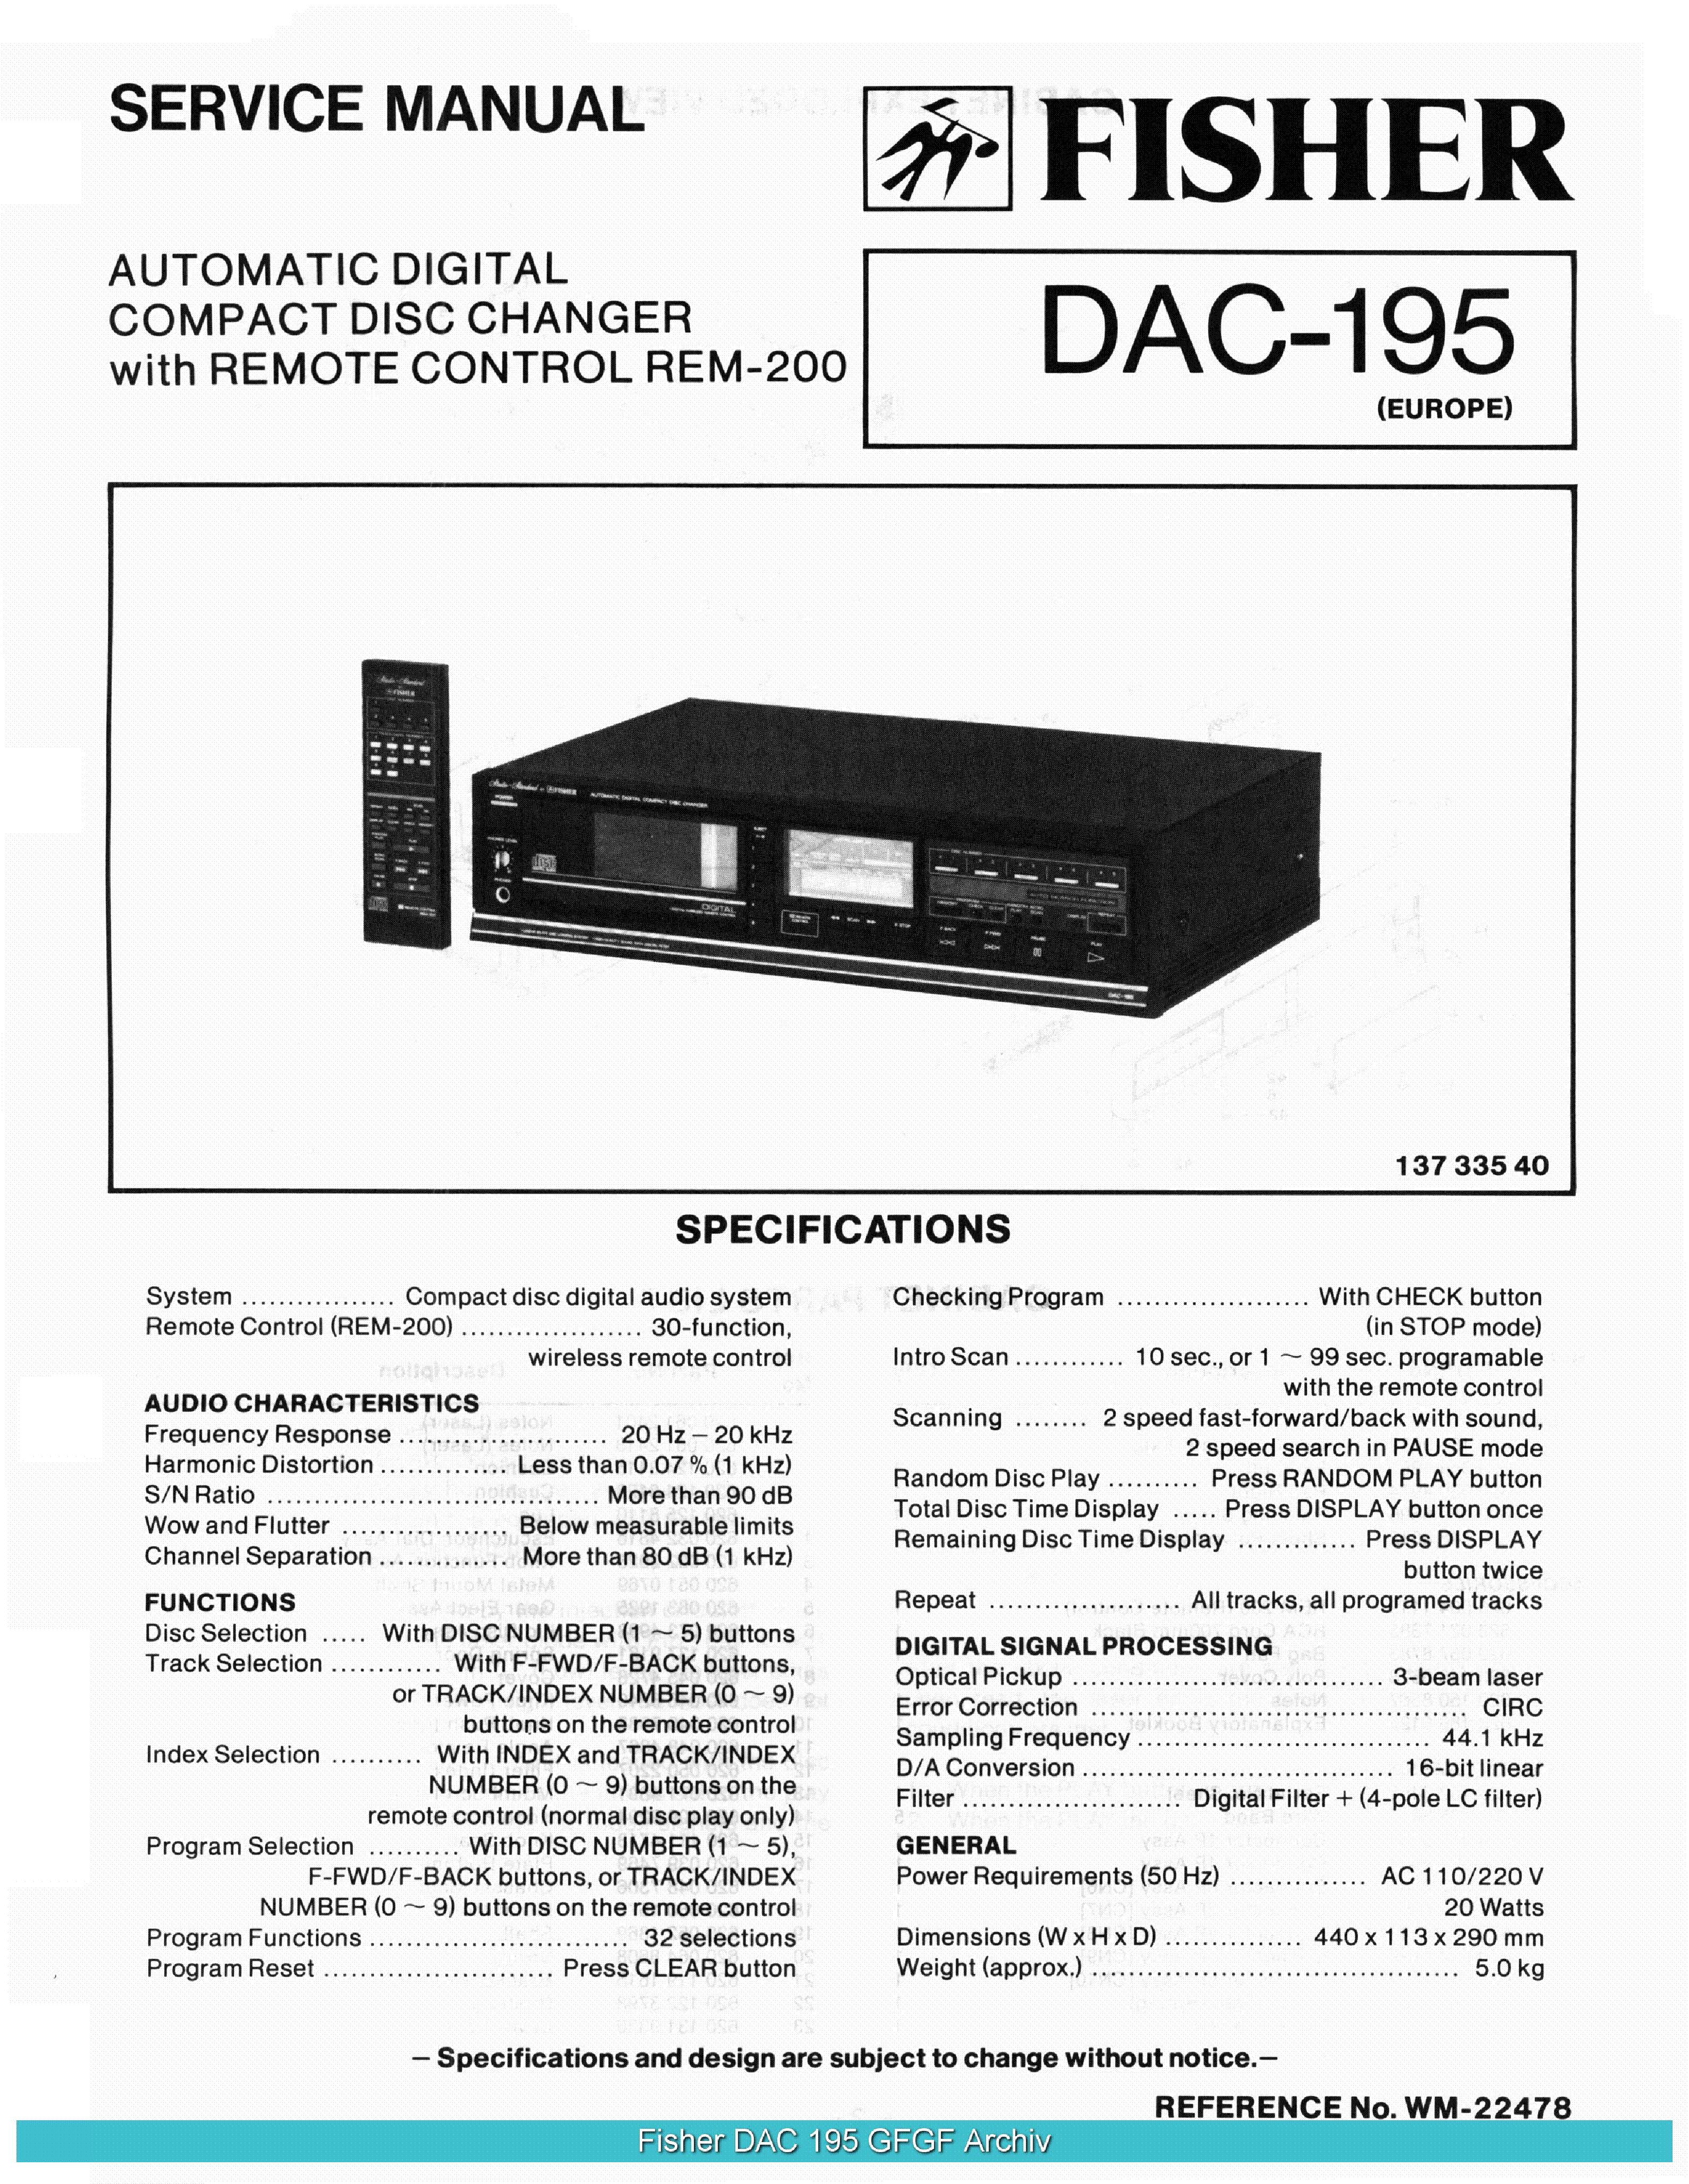 FISHER DAC195 SCH service manual (1st page)